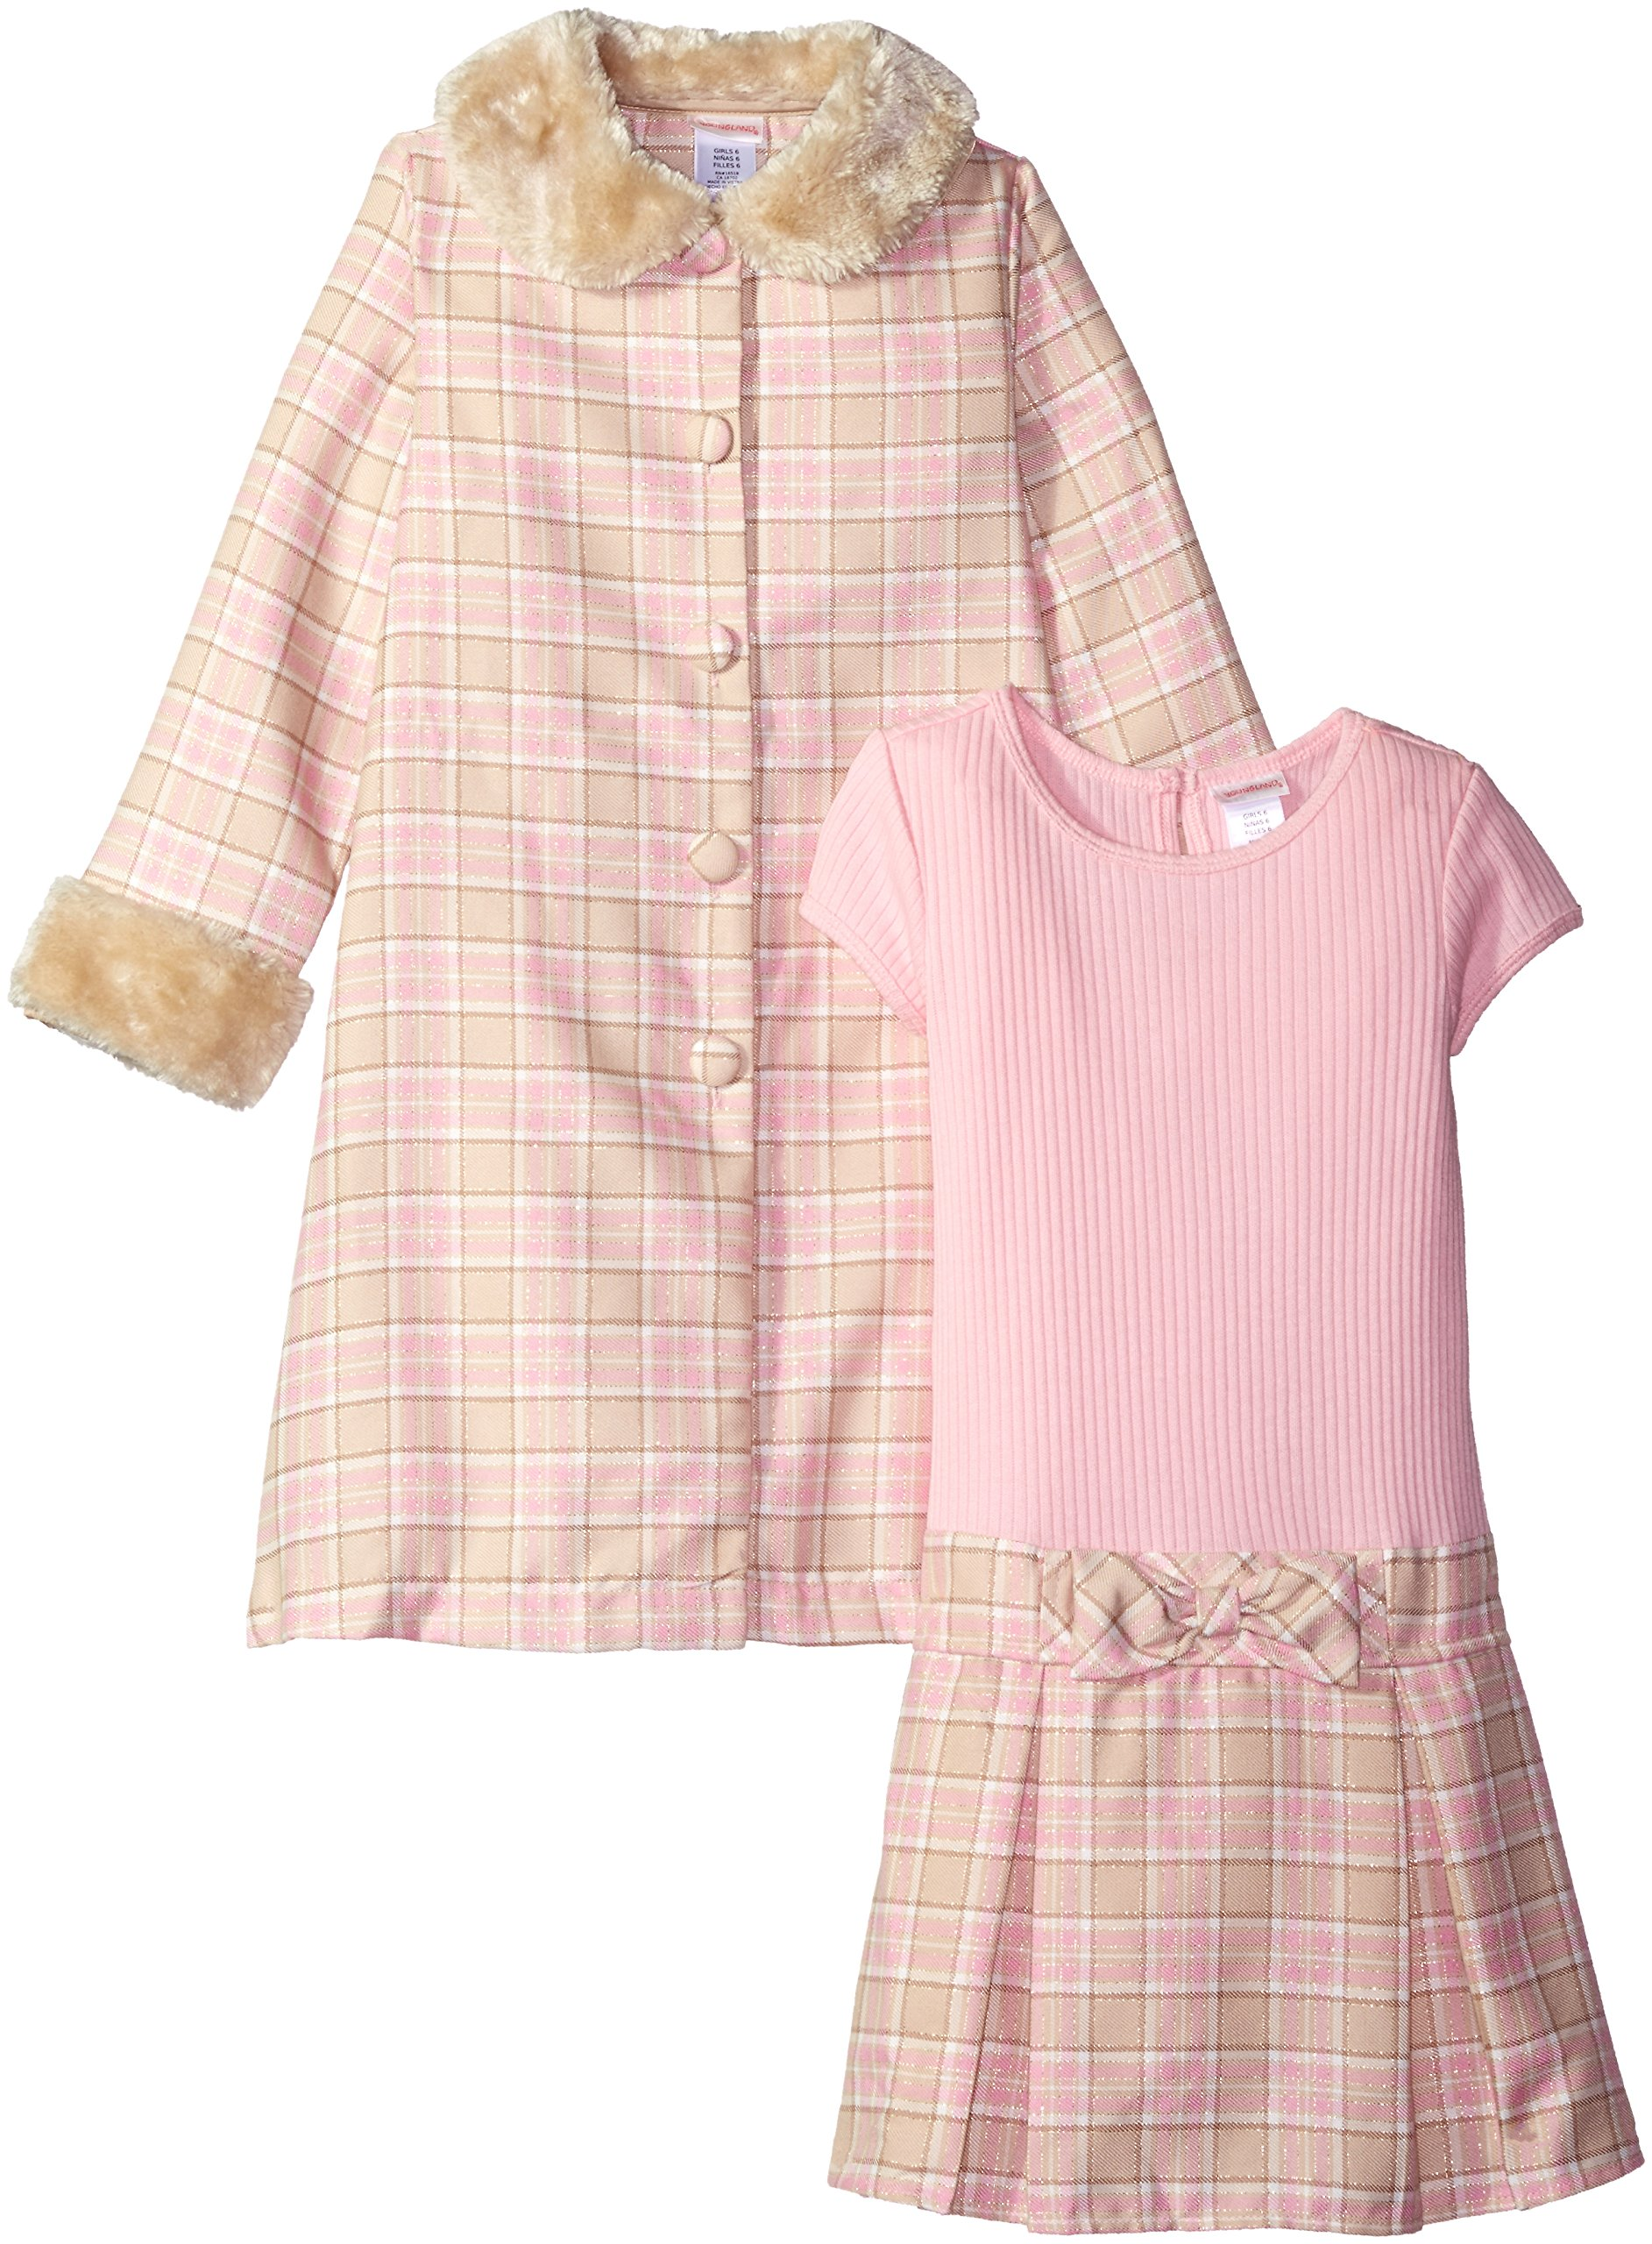 Youngland Little Girls' Woven Plaid Coat with Faux Fur Trim and Pink Knit to Woven Plaid Dress, Pink/Tan, 4 by Youngland (Image #1)